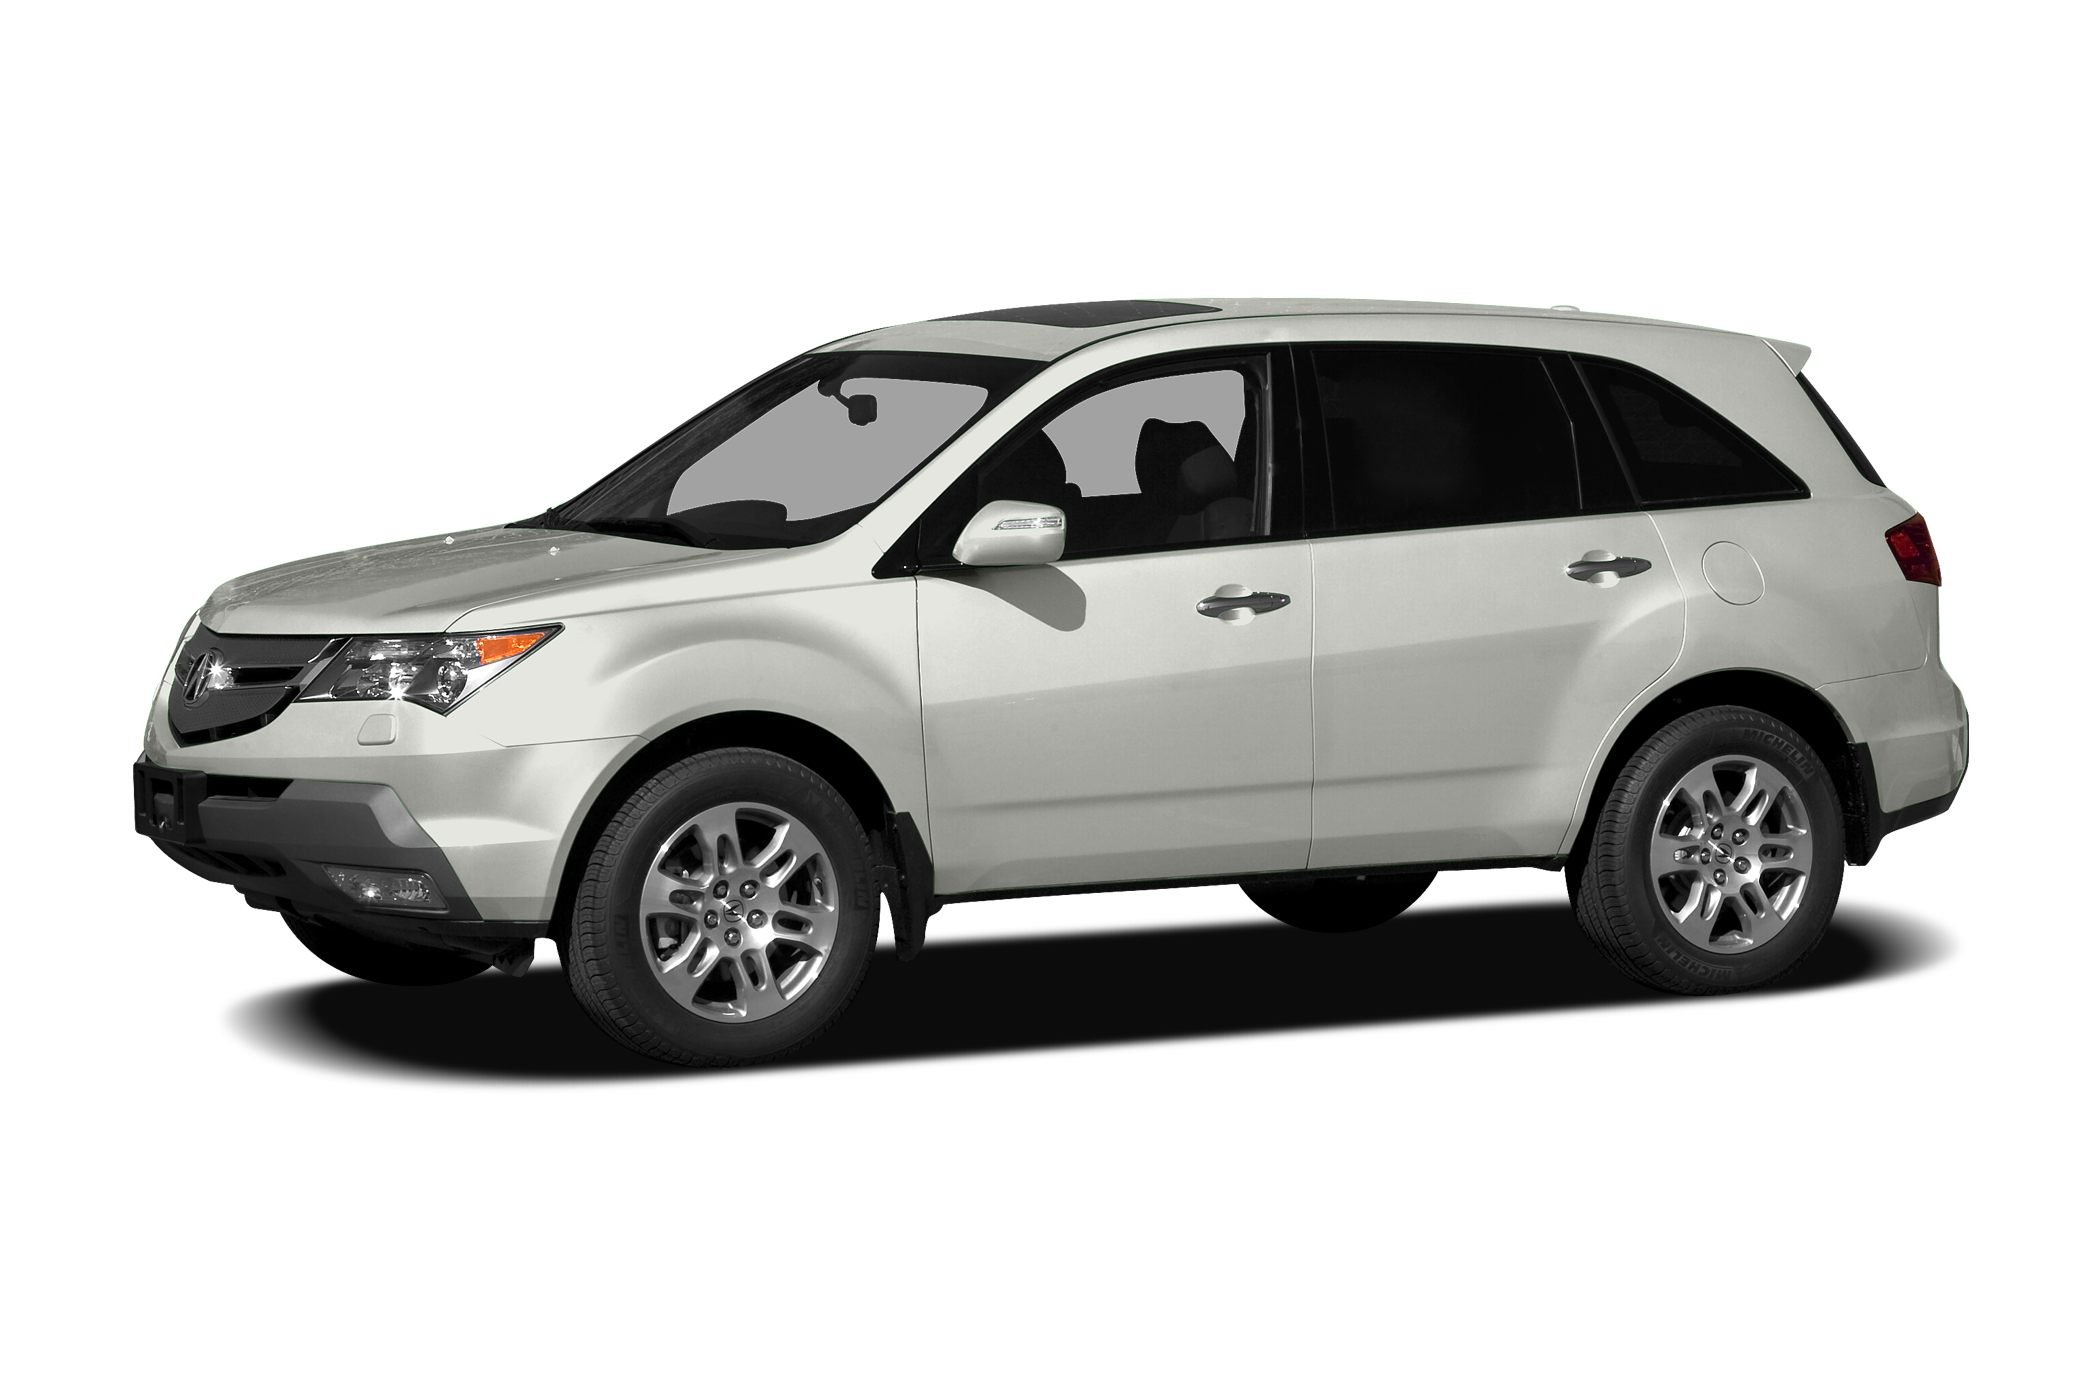 2008 Acura MDX 37 Technology  WHEN IT COMES TO EXCELLENCE IN USED CAR SALES YOU KNOW YOURE AT